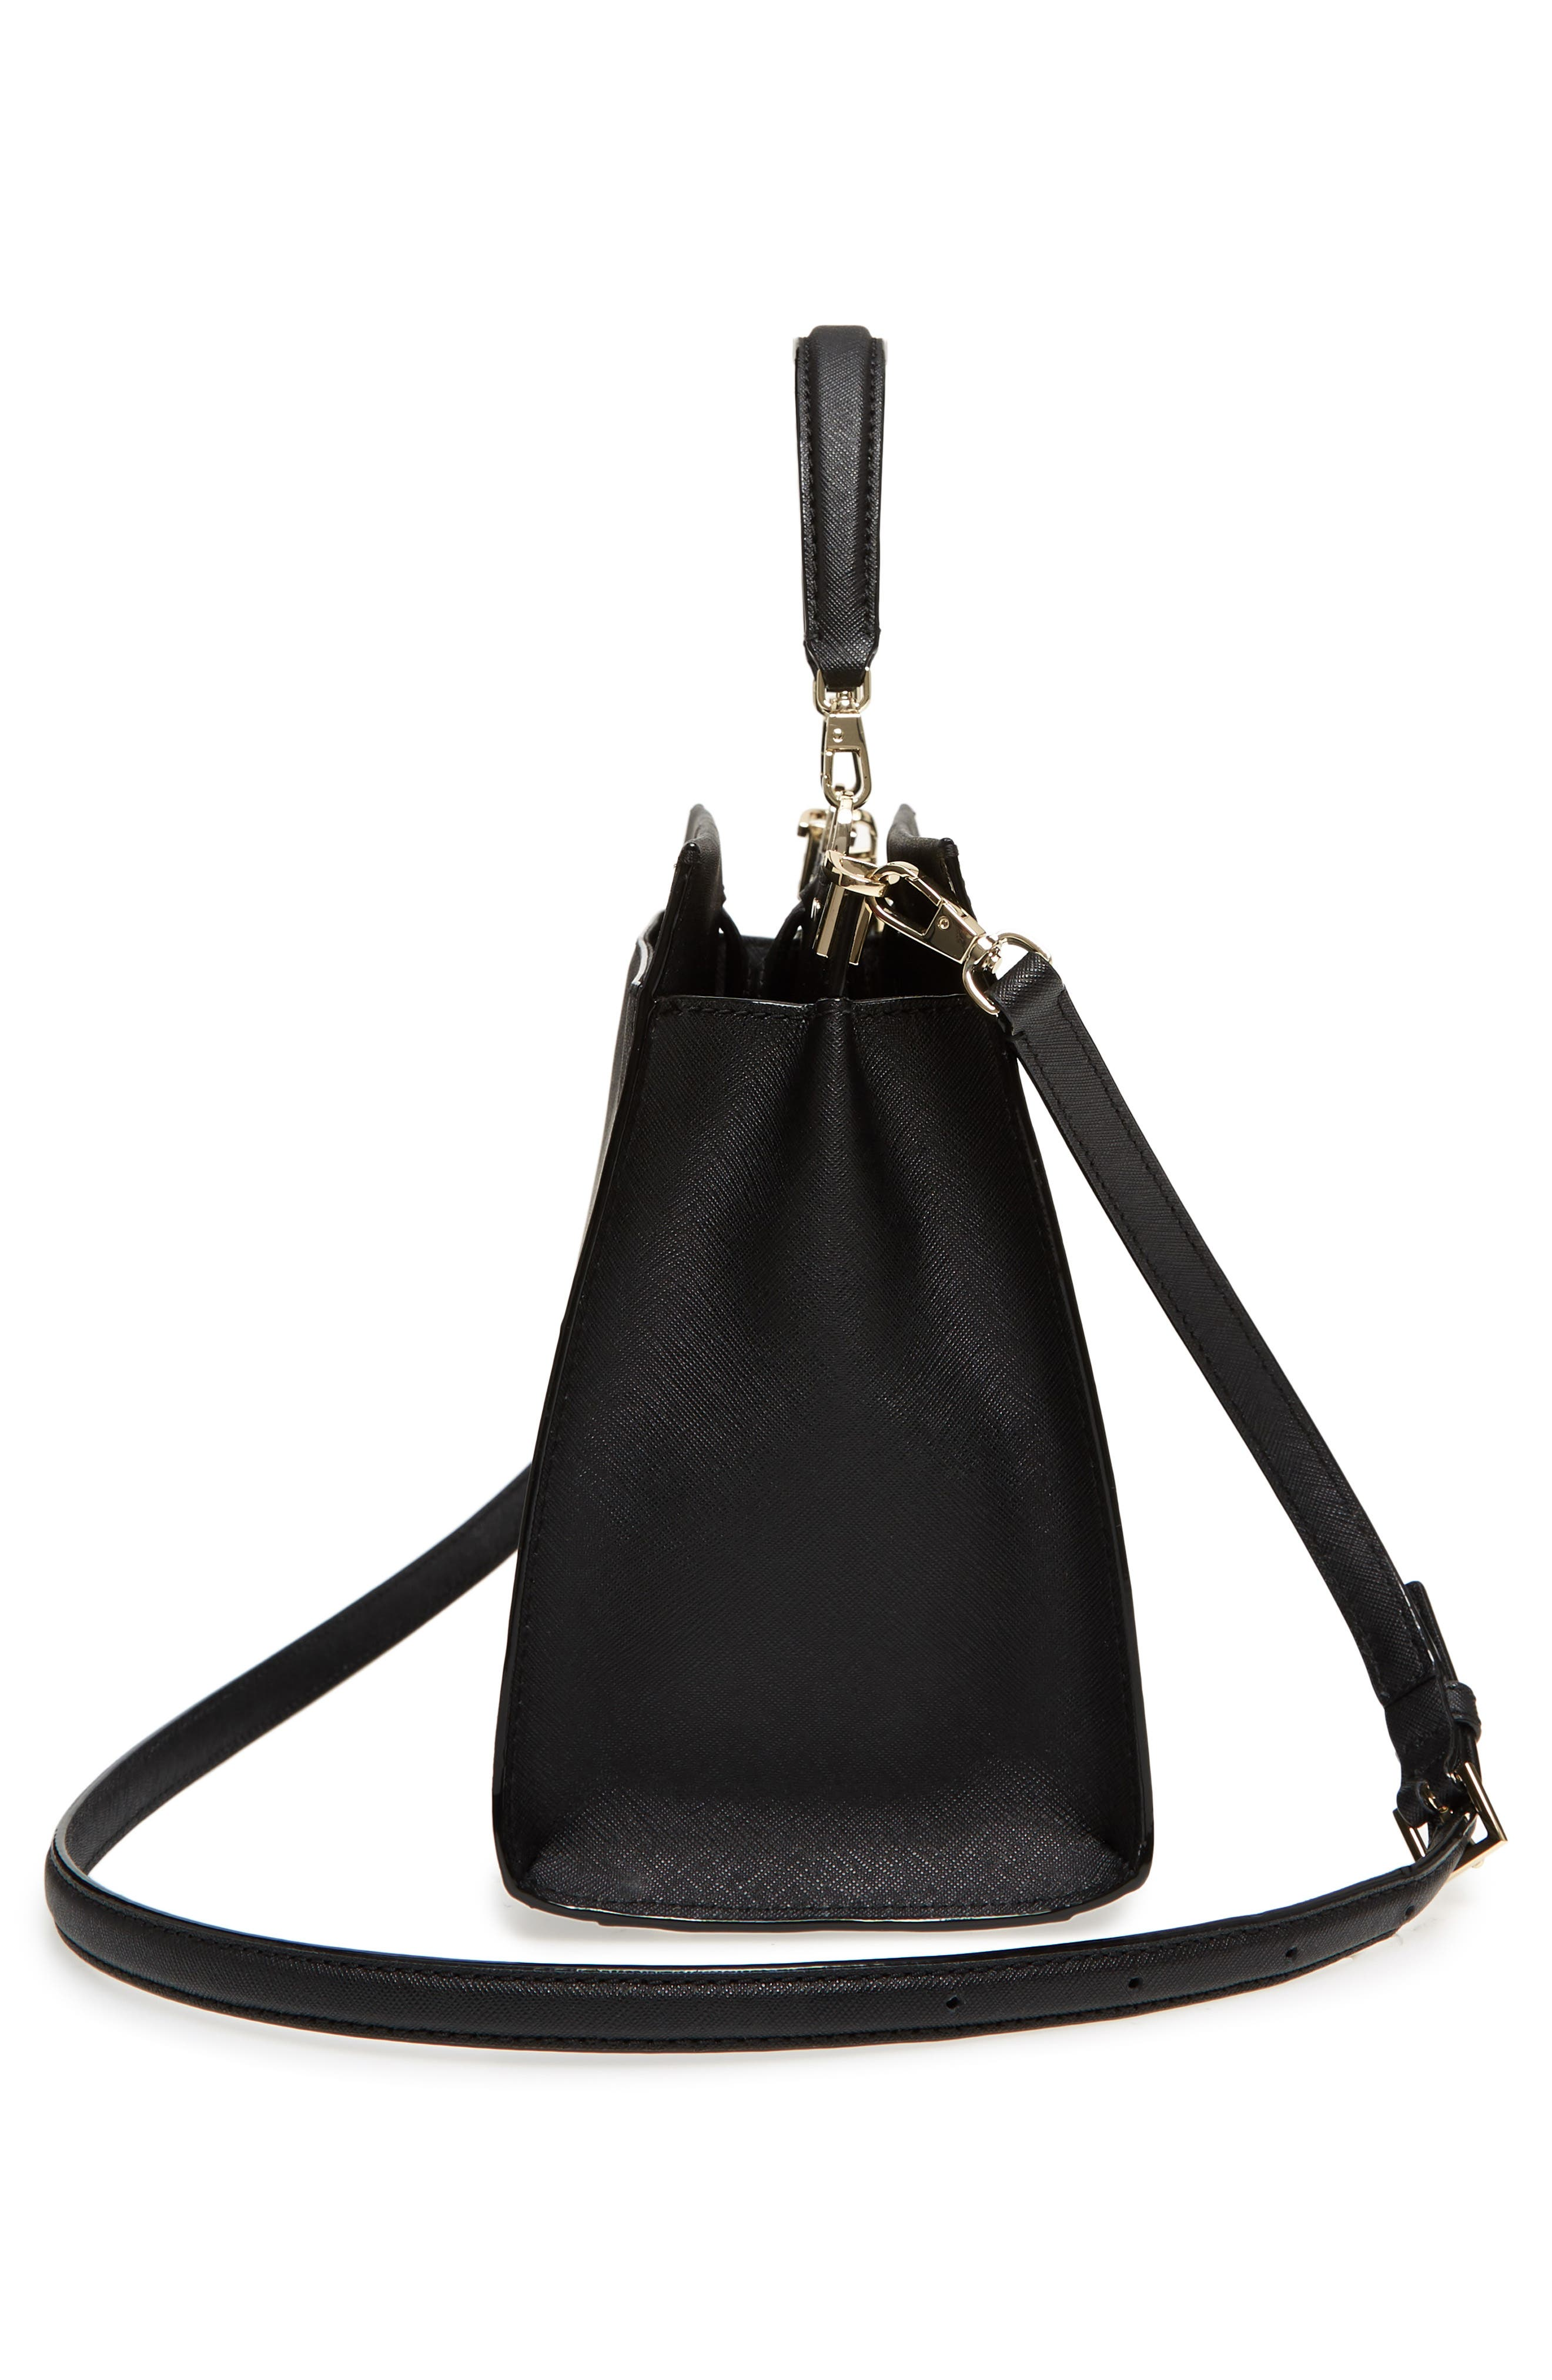 cameron street - sara leather satchel,                             Alternate thumbnail 5, color,                             Black